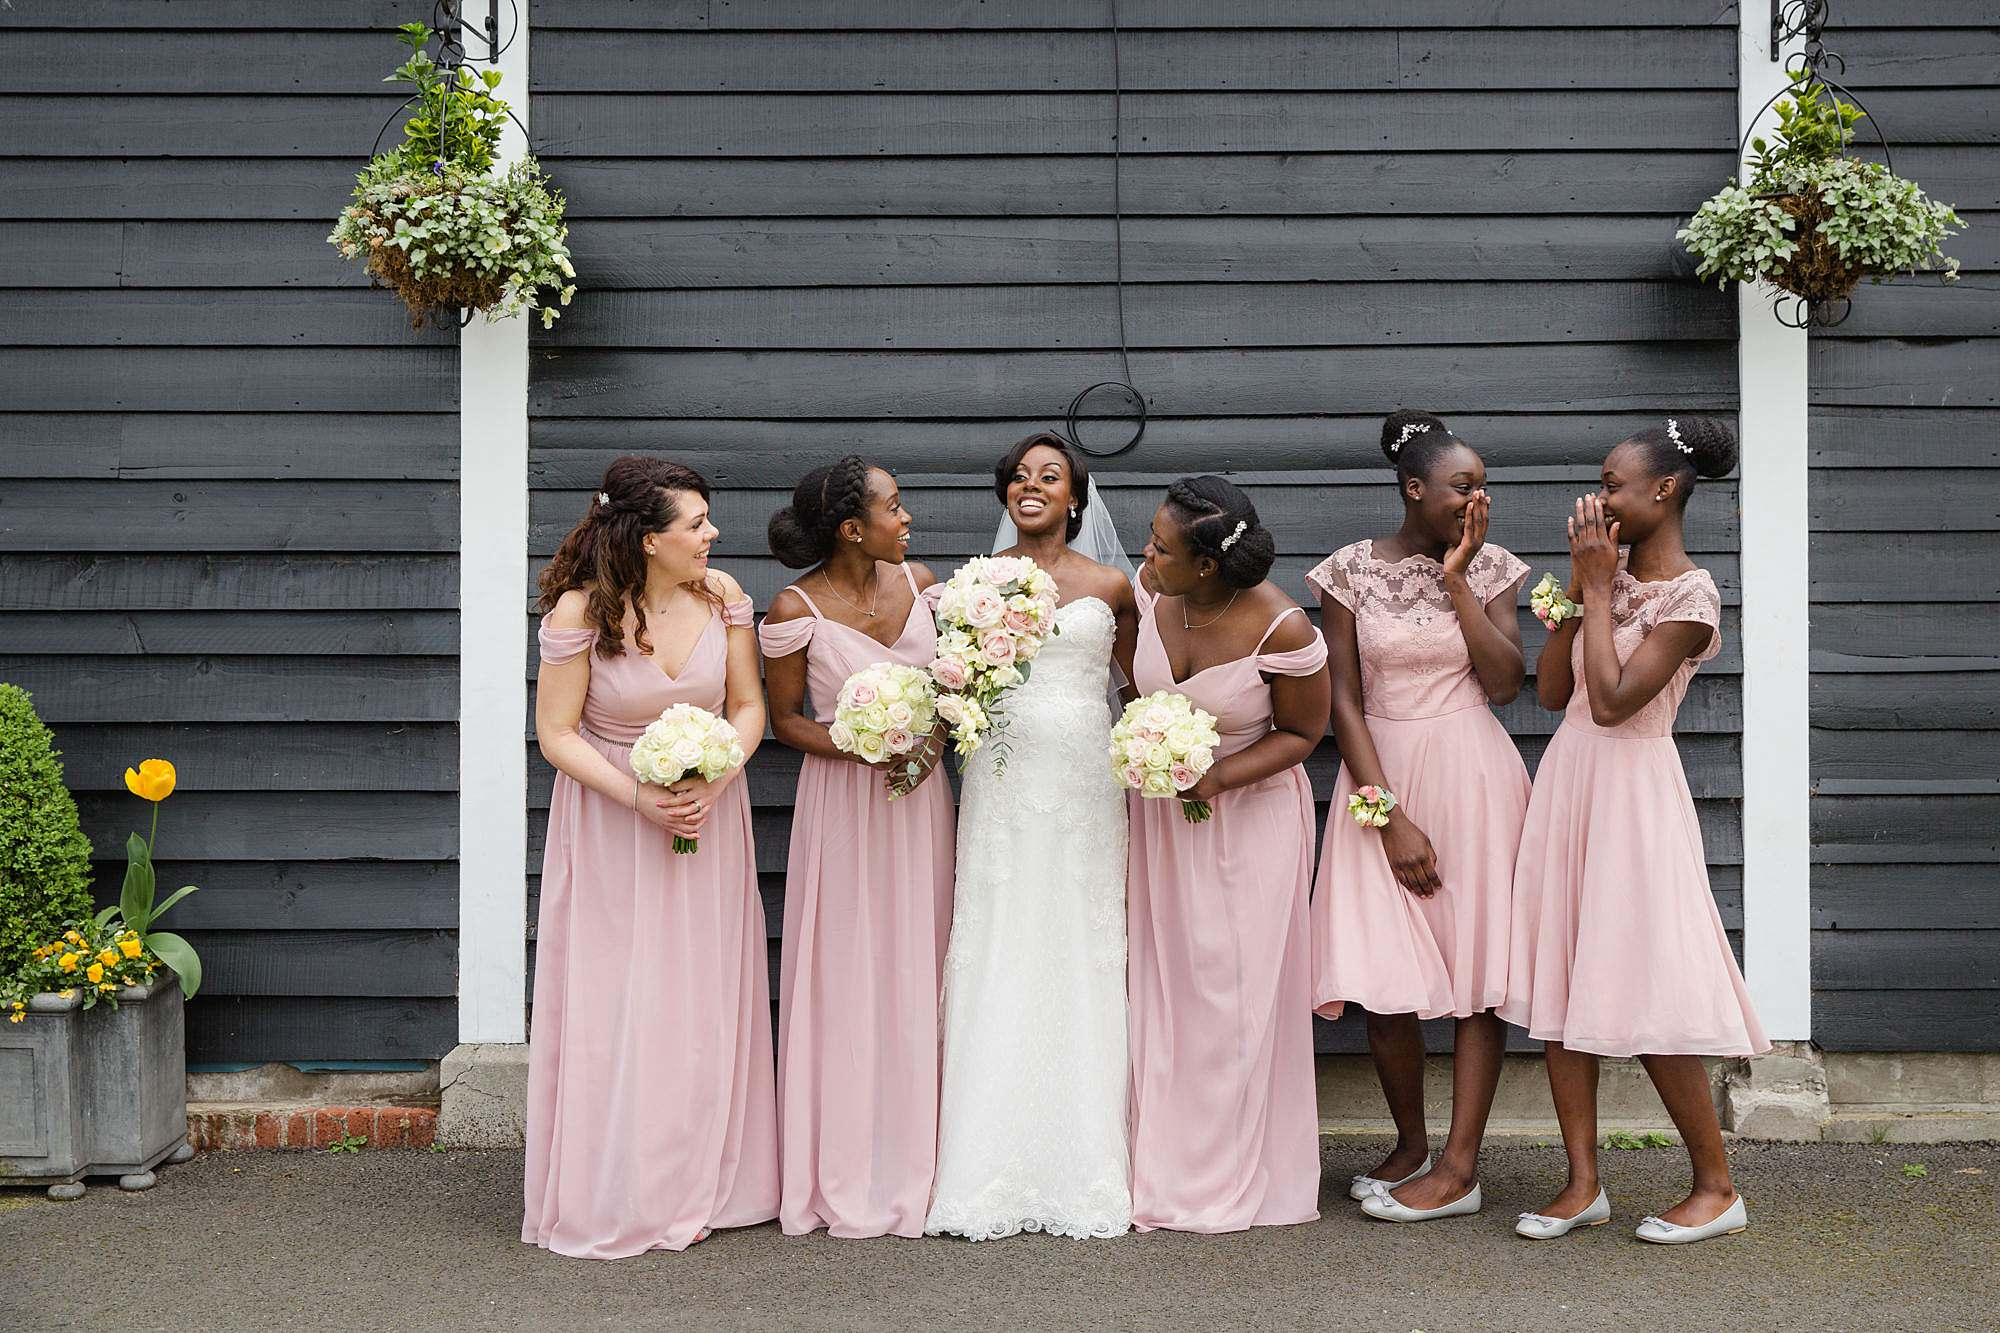 Bank of England Sports Centre wedding bride and bridesmaids